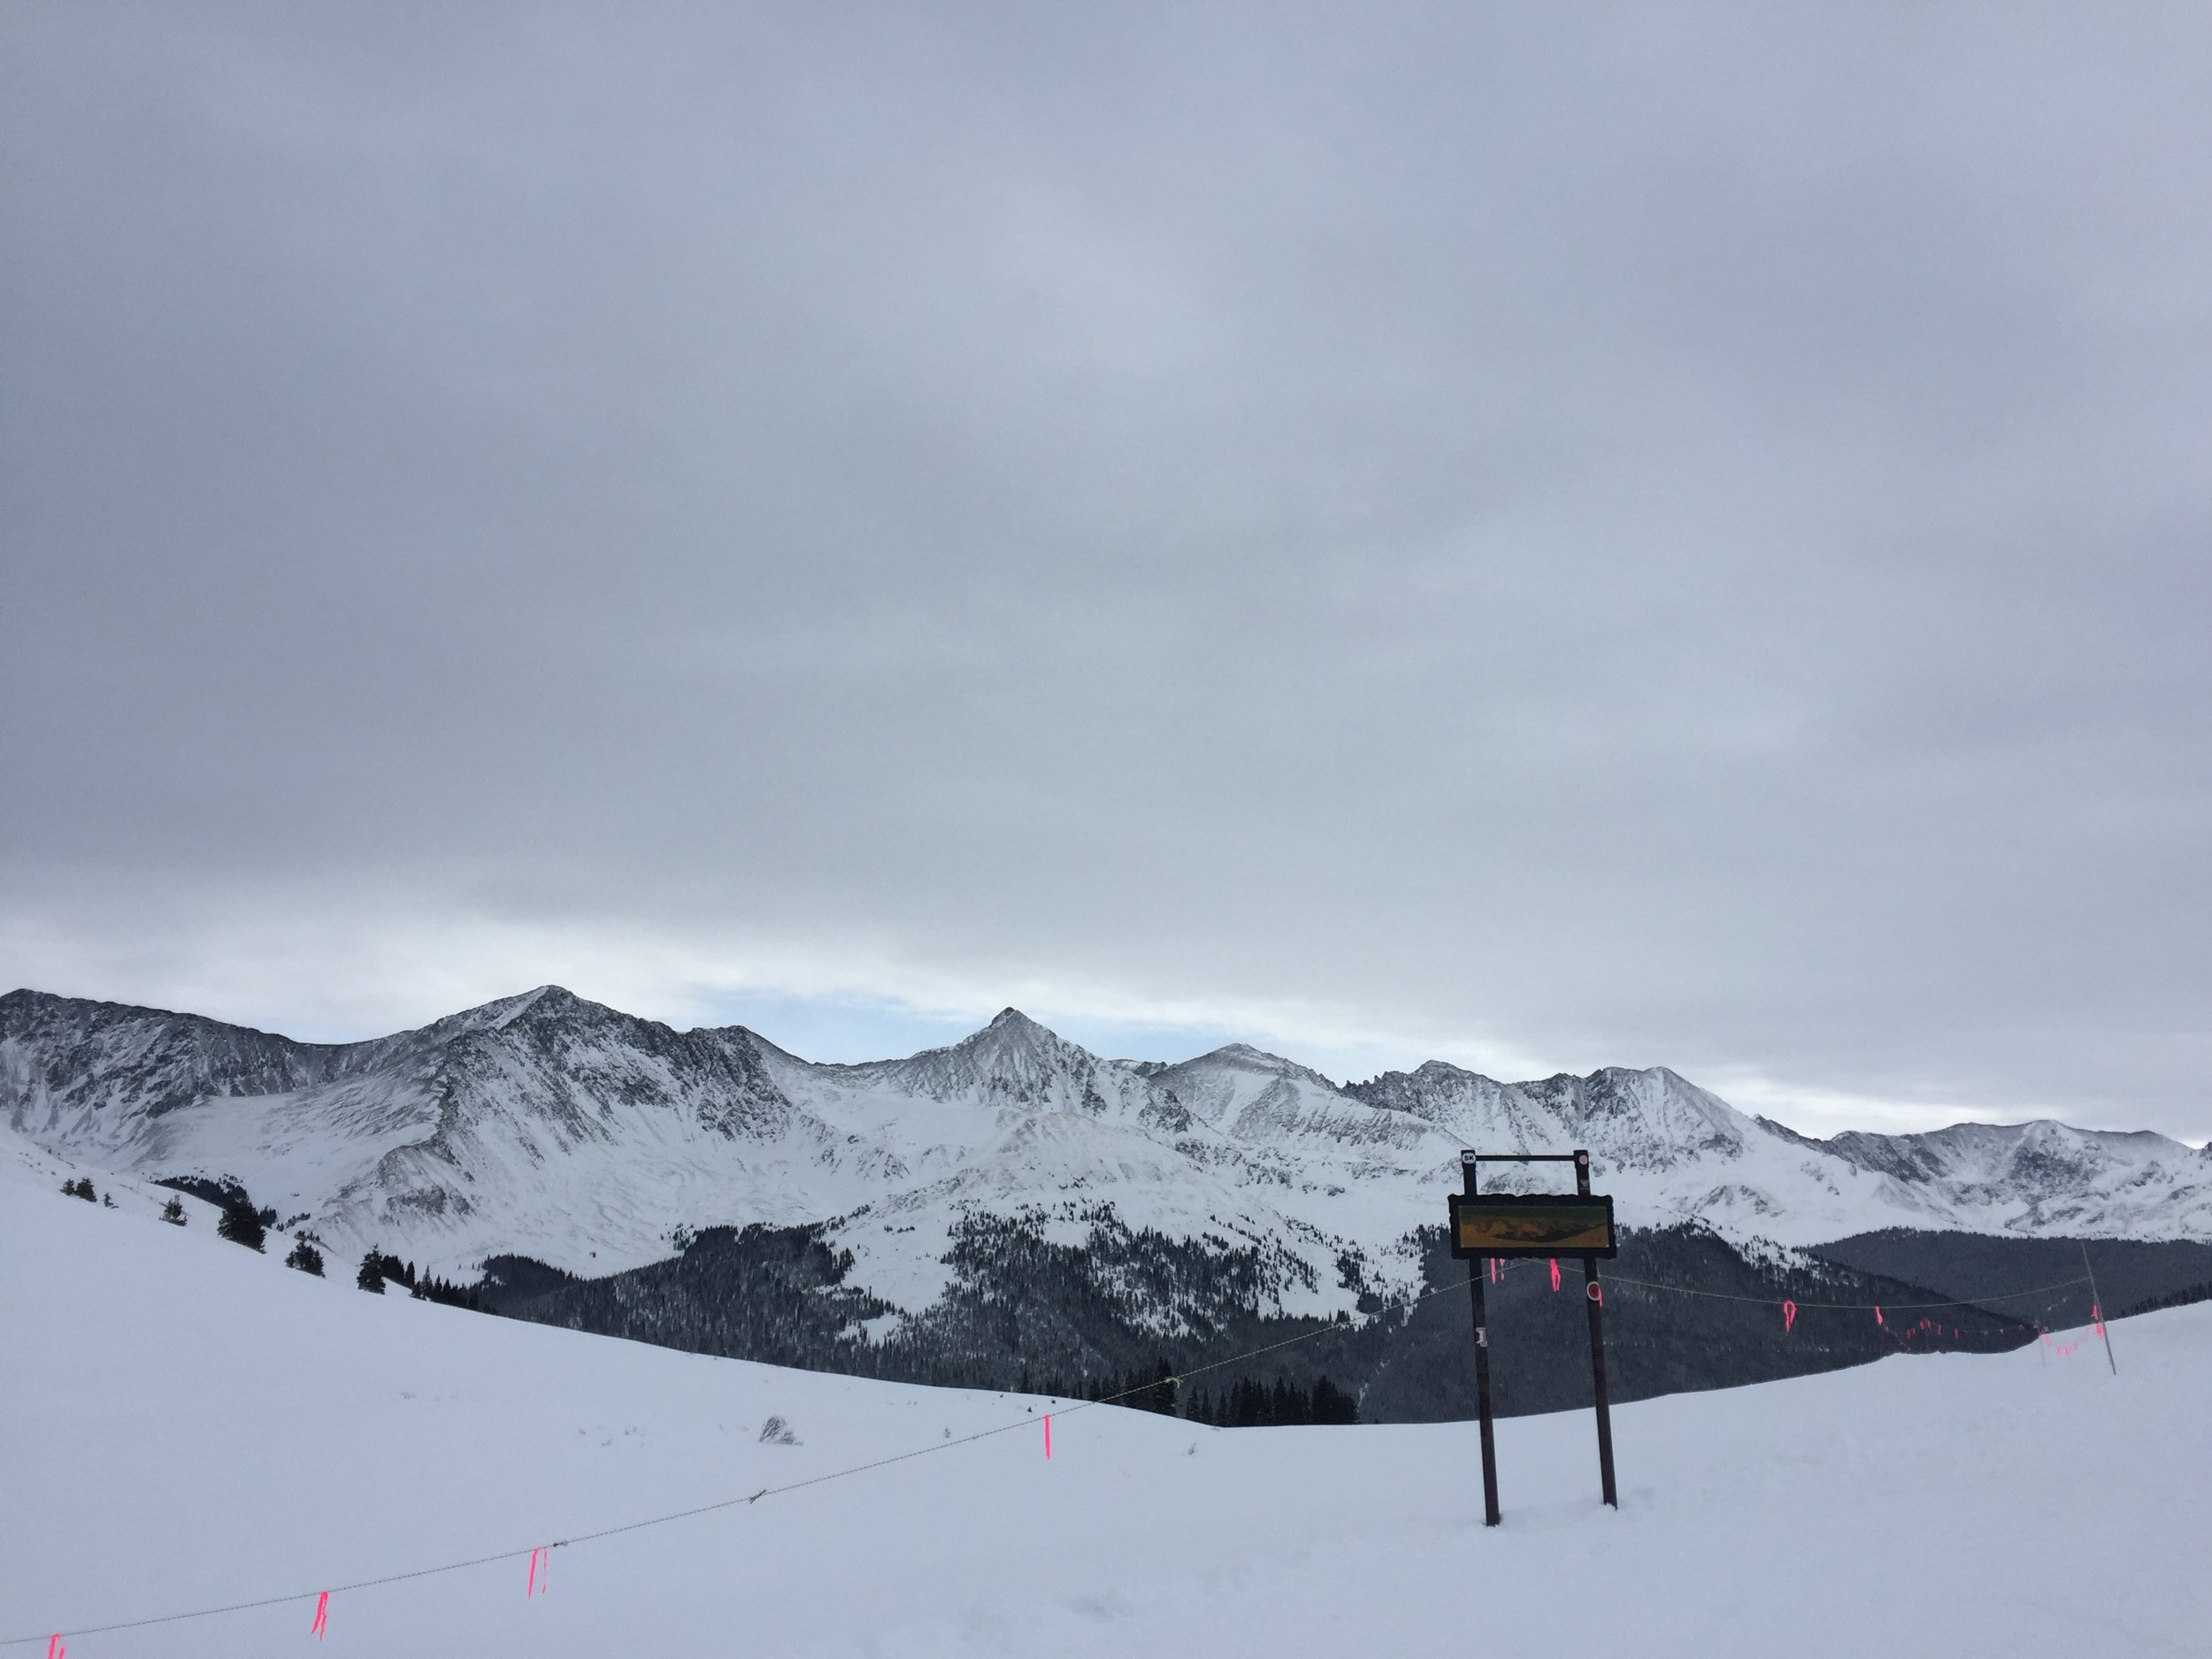 This was taken at the top of Copper Mountain's back bowls.